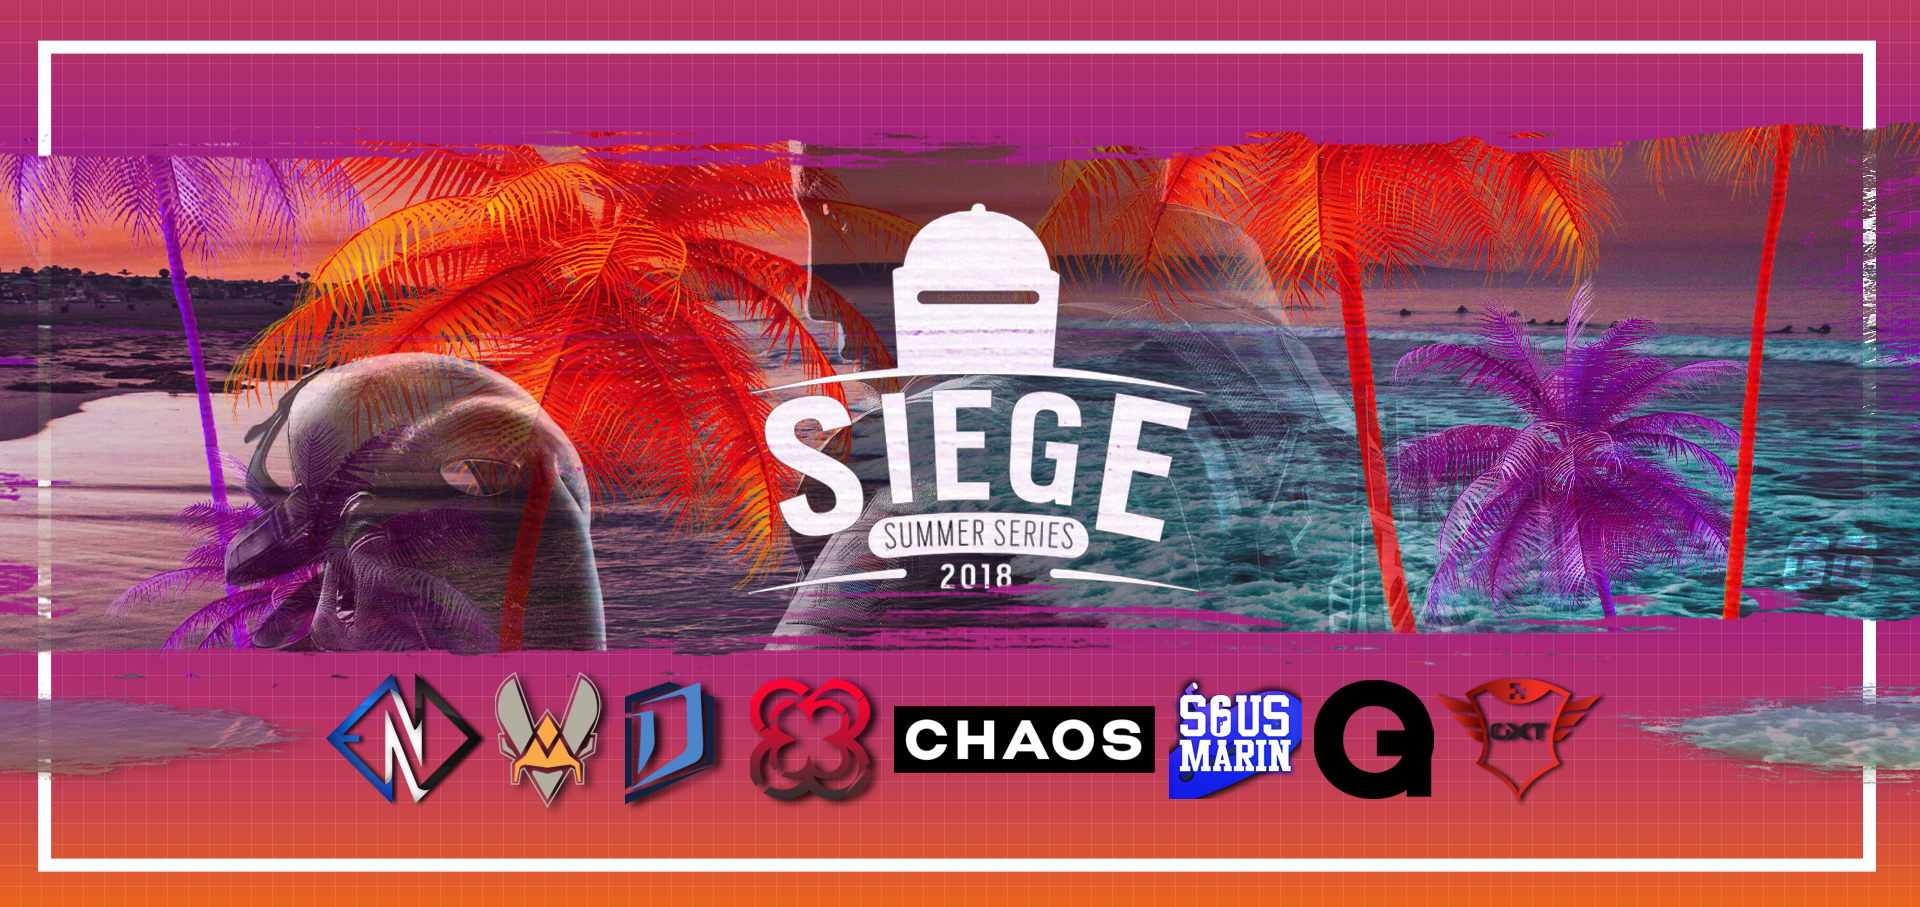 Introducing the Siege Summer Series 2018!